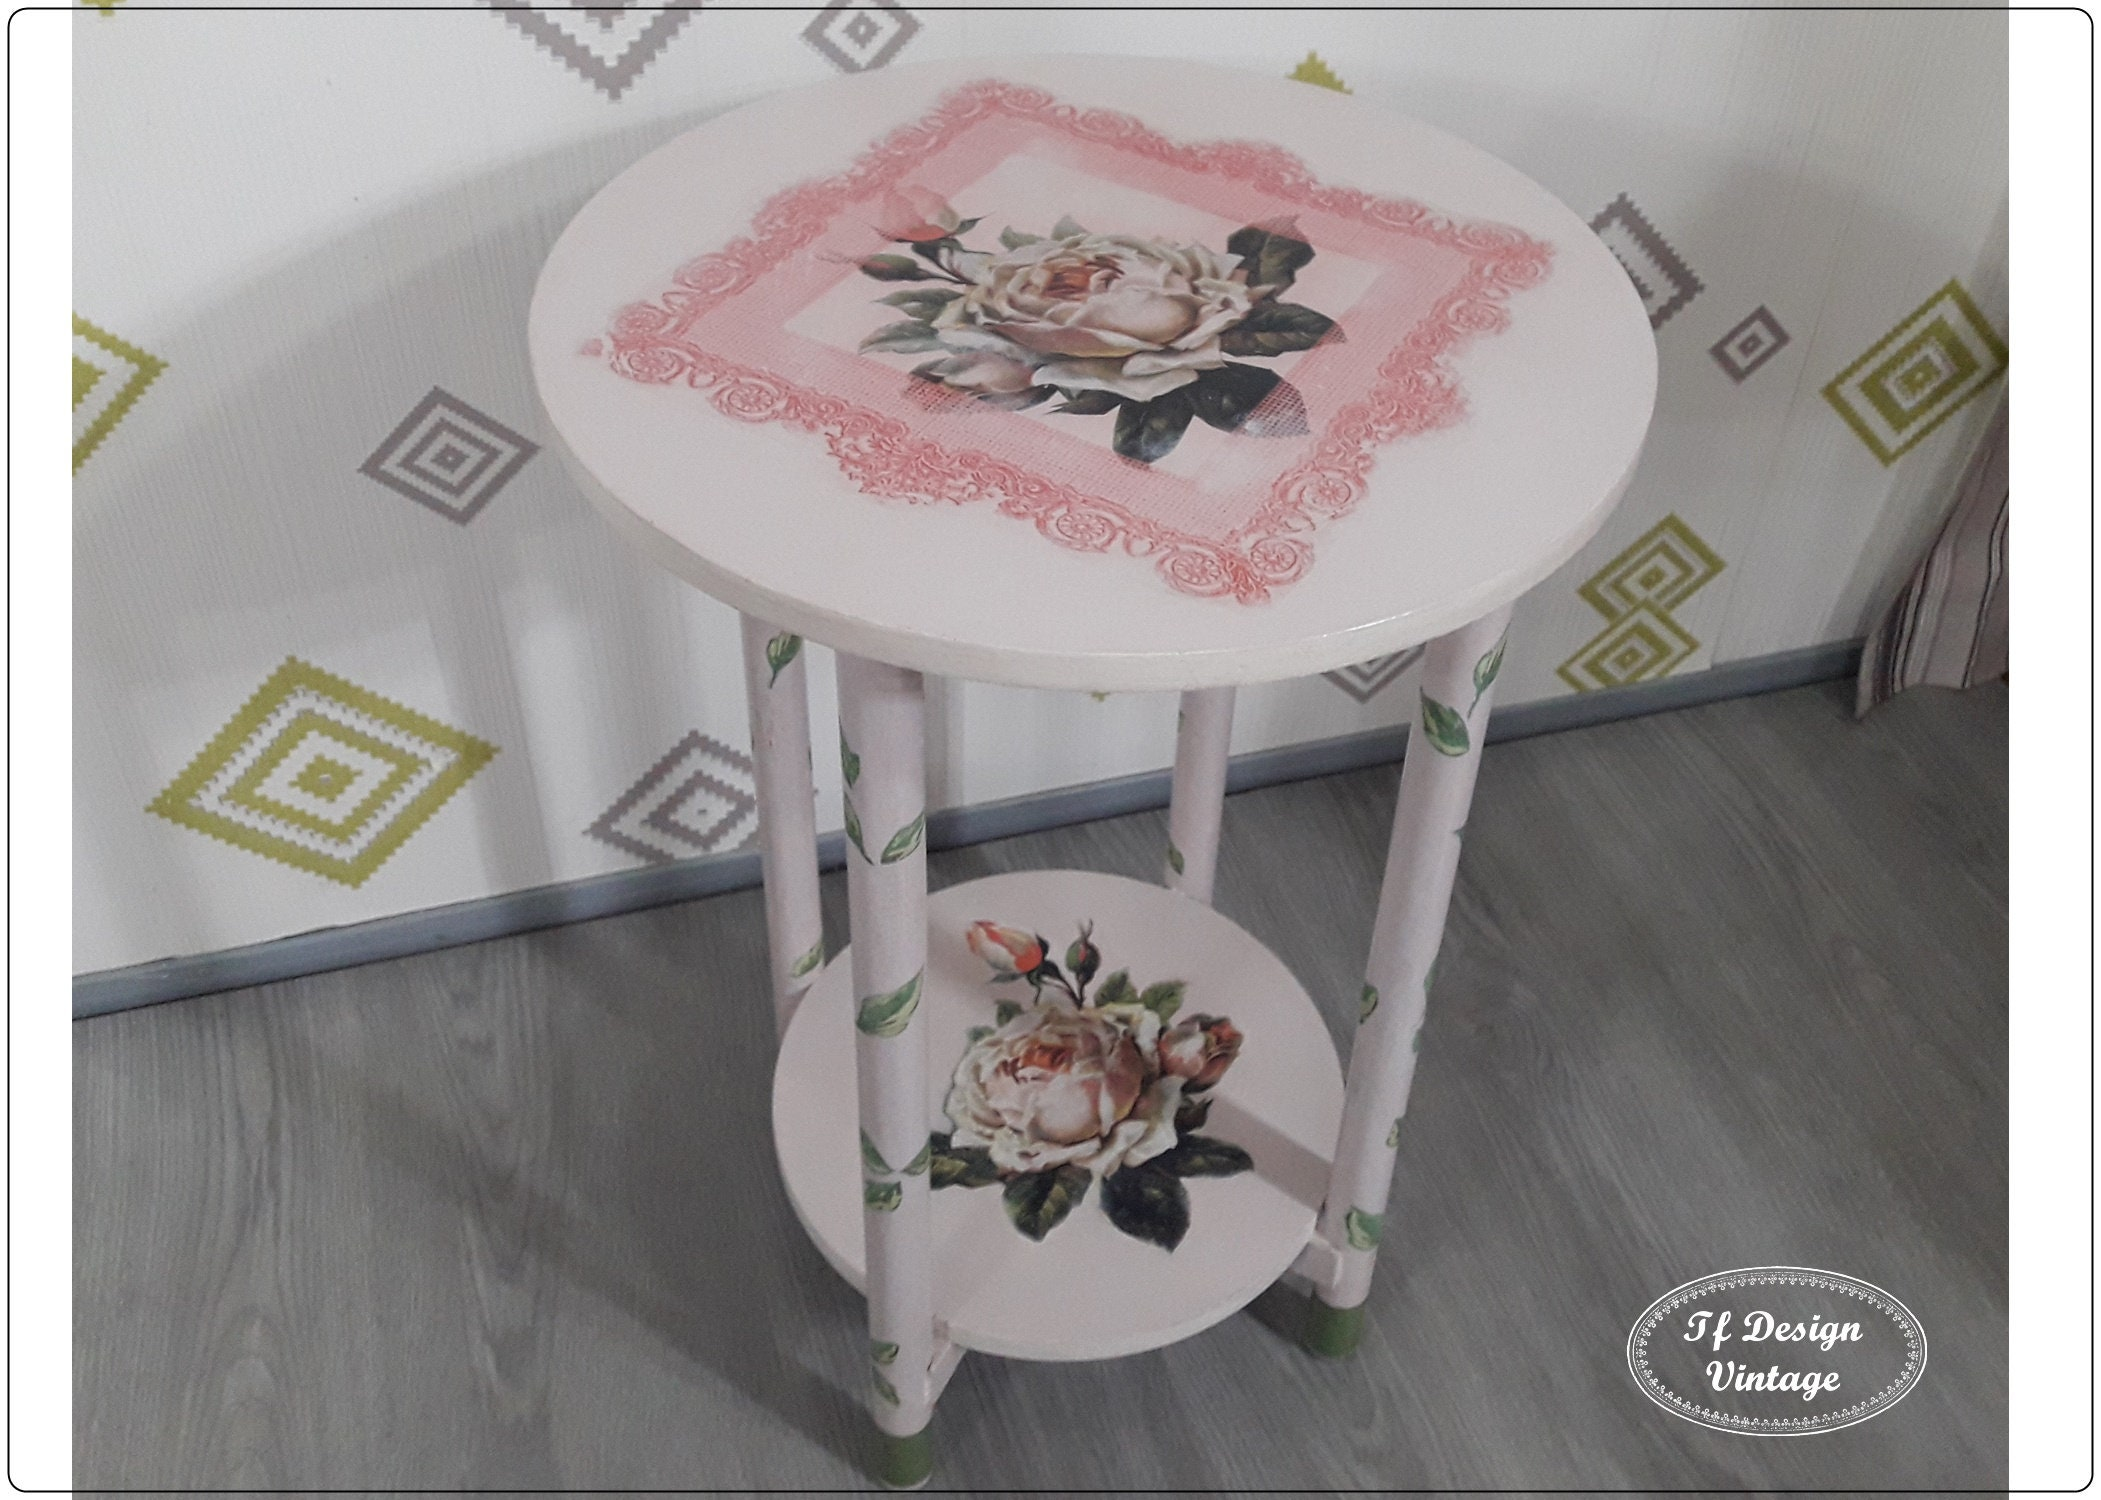 Small Circular Nightstand Round Coffee Table Side Table Round Round Bedside Table Vintage Small Round Accent Table Painted Pink Table 40 Cm